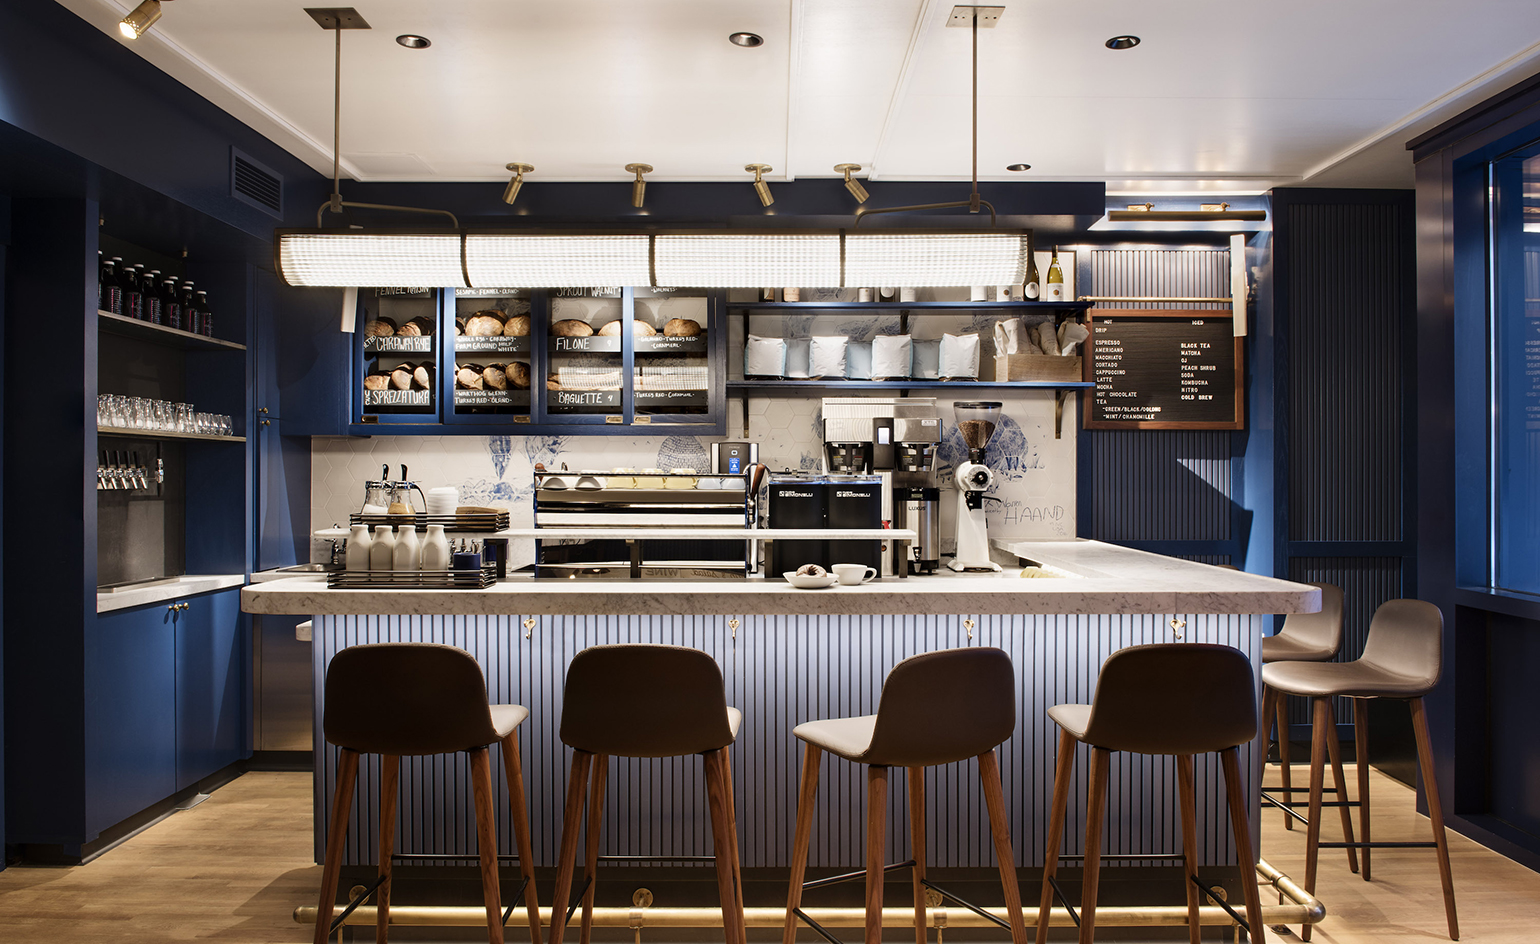 Complete Black Wallpaper Daily Provisions Restaurant Review New York Usa